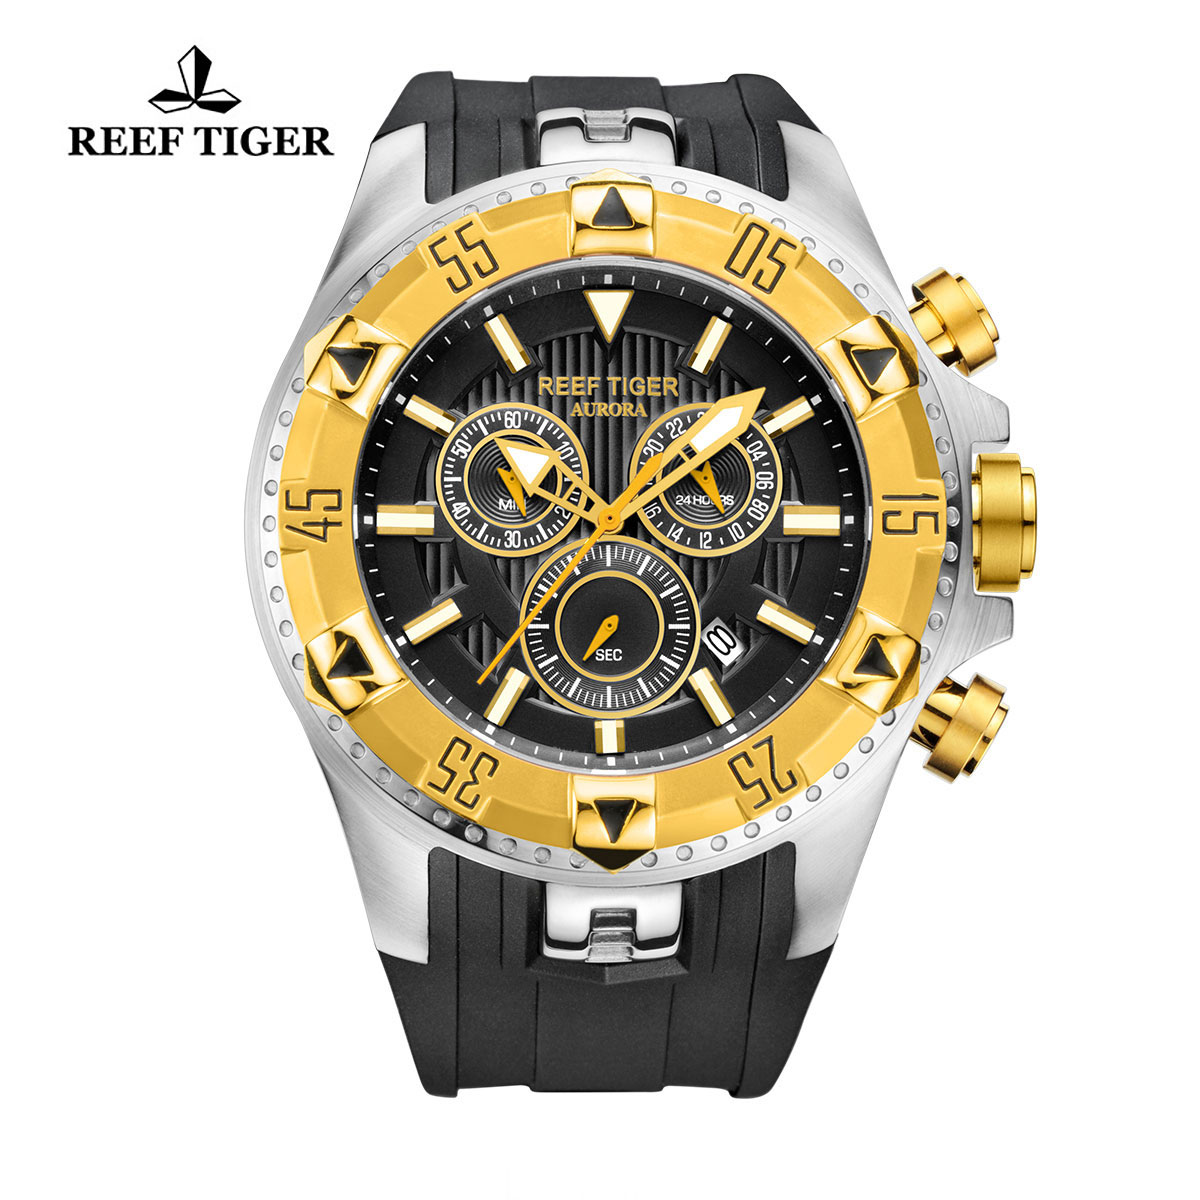 Reef Tiger Hercules Sport Watches Chronograph Steel Case Yellow Gold Bezel Black Dial Watch RGA303-GBB